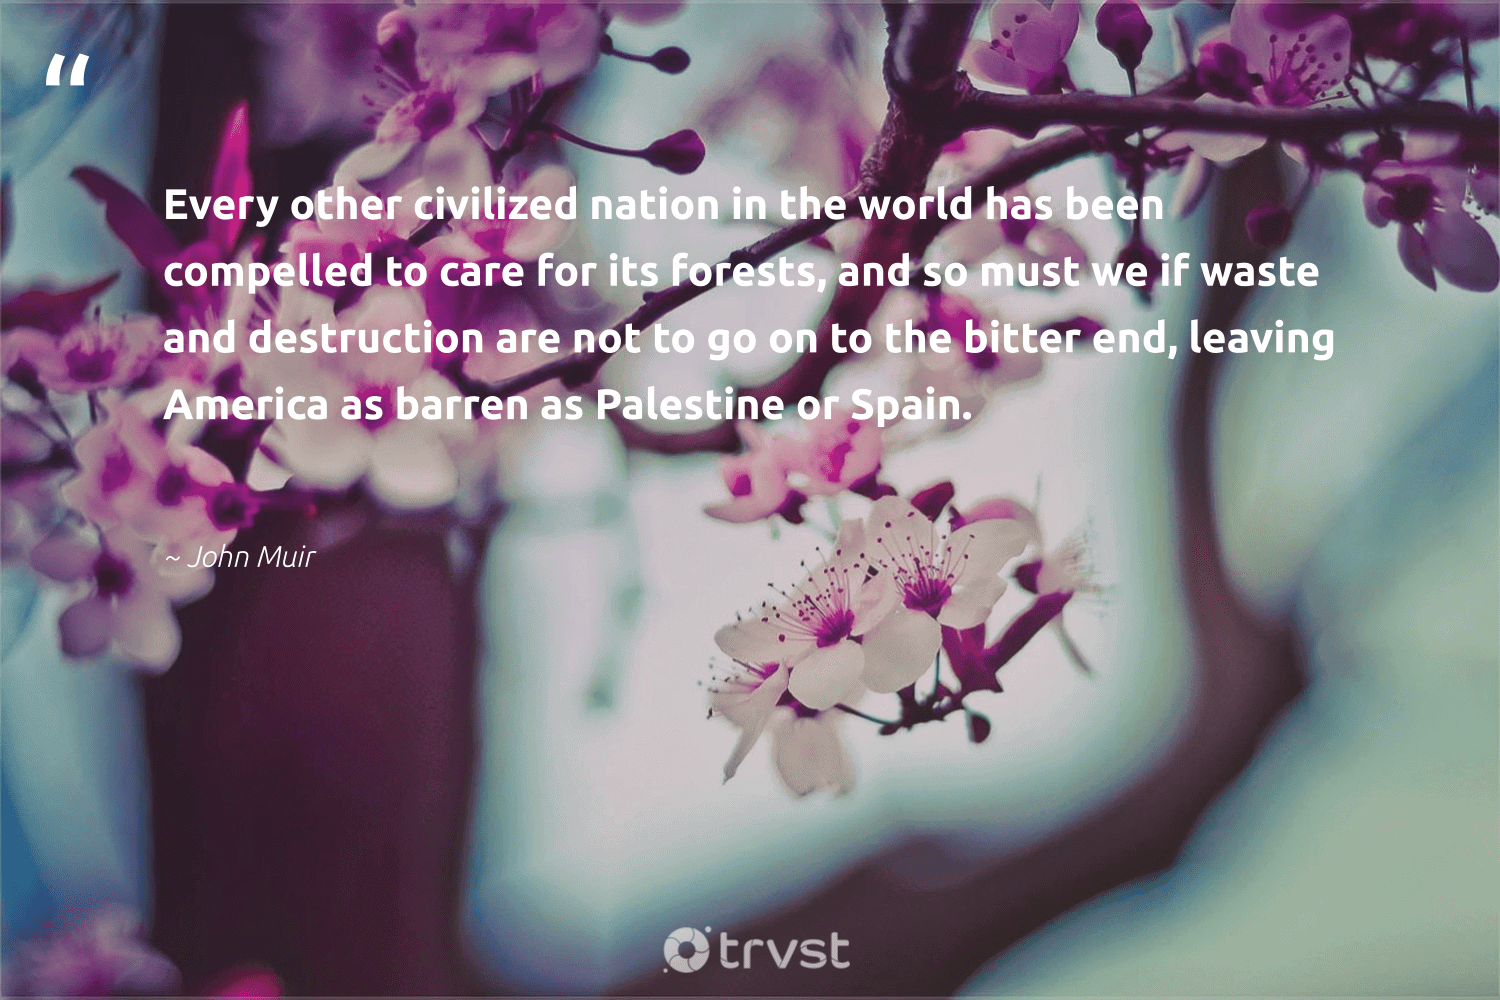 """Every other civilized nation in the world has been compelled to care for its forests, and so must we if waste and destruction are not to go on to the bitter end, leaving America as barren as Palestine or Spain.""  - John Muir #trvst #quotes #waste #climatechange #impact #wildlifeplanet #collectiveaction #sustainable #dotherightthing #sustainableliving #changetheworld #noplanetb"